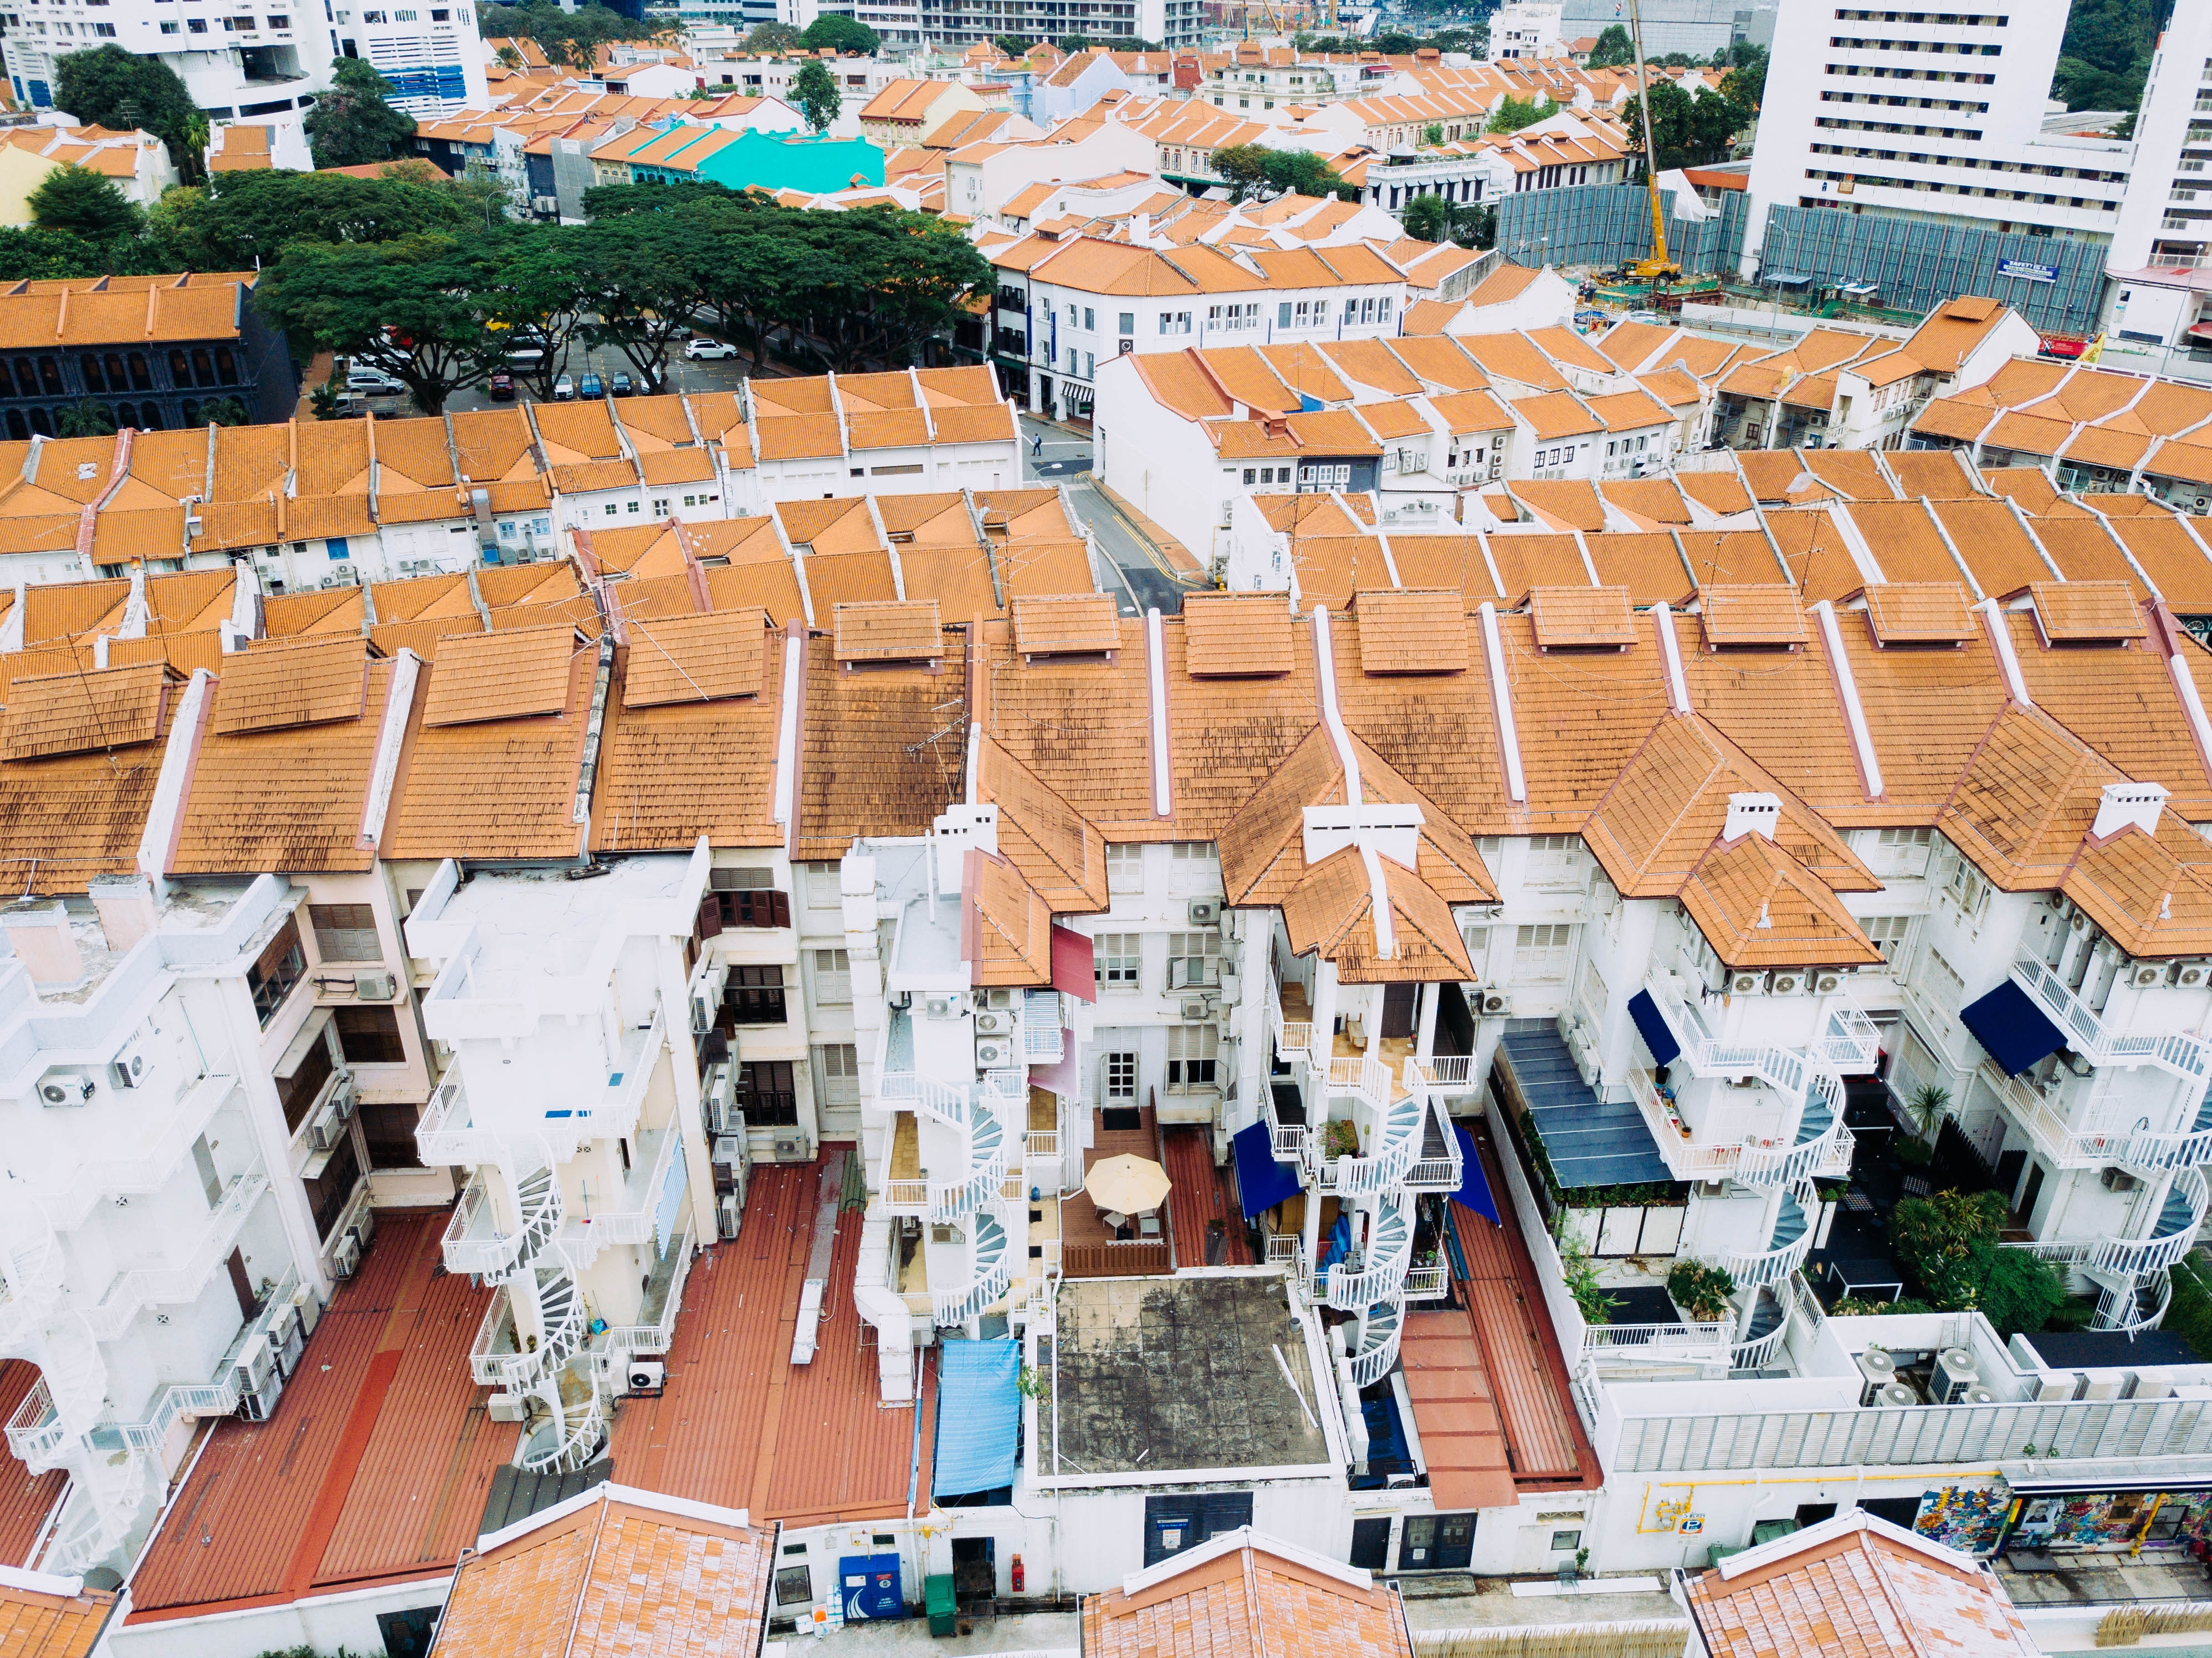 aerial photo of houses with brown roofs